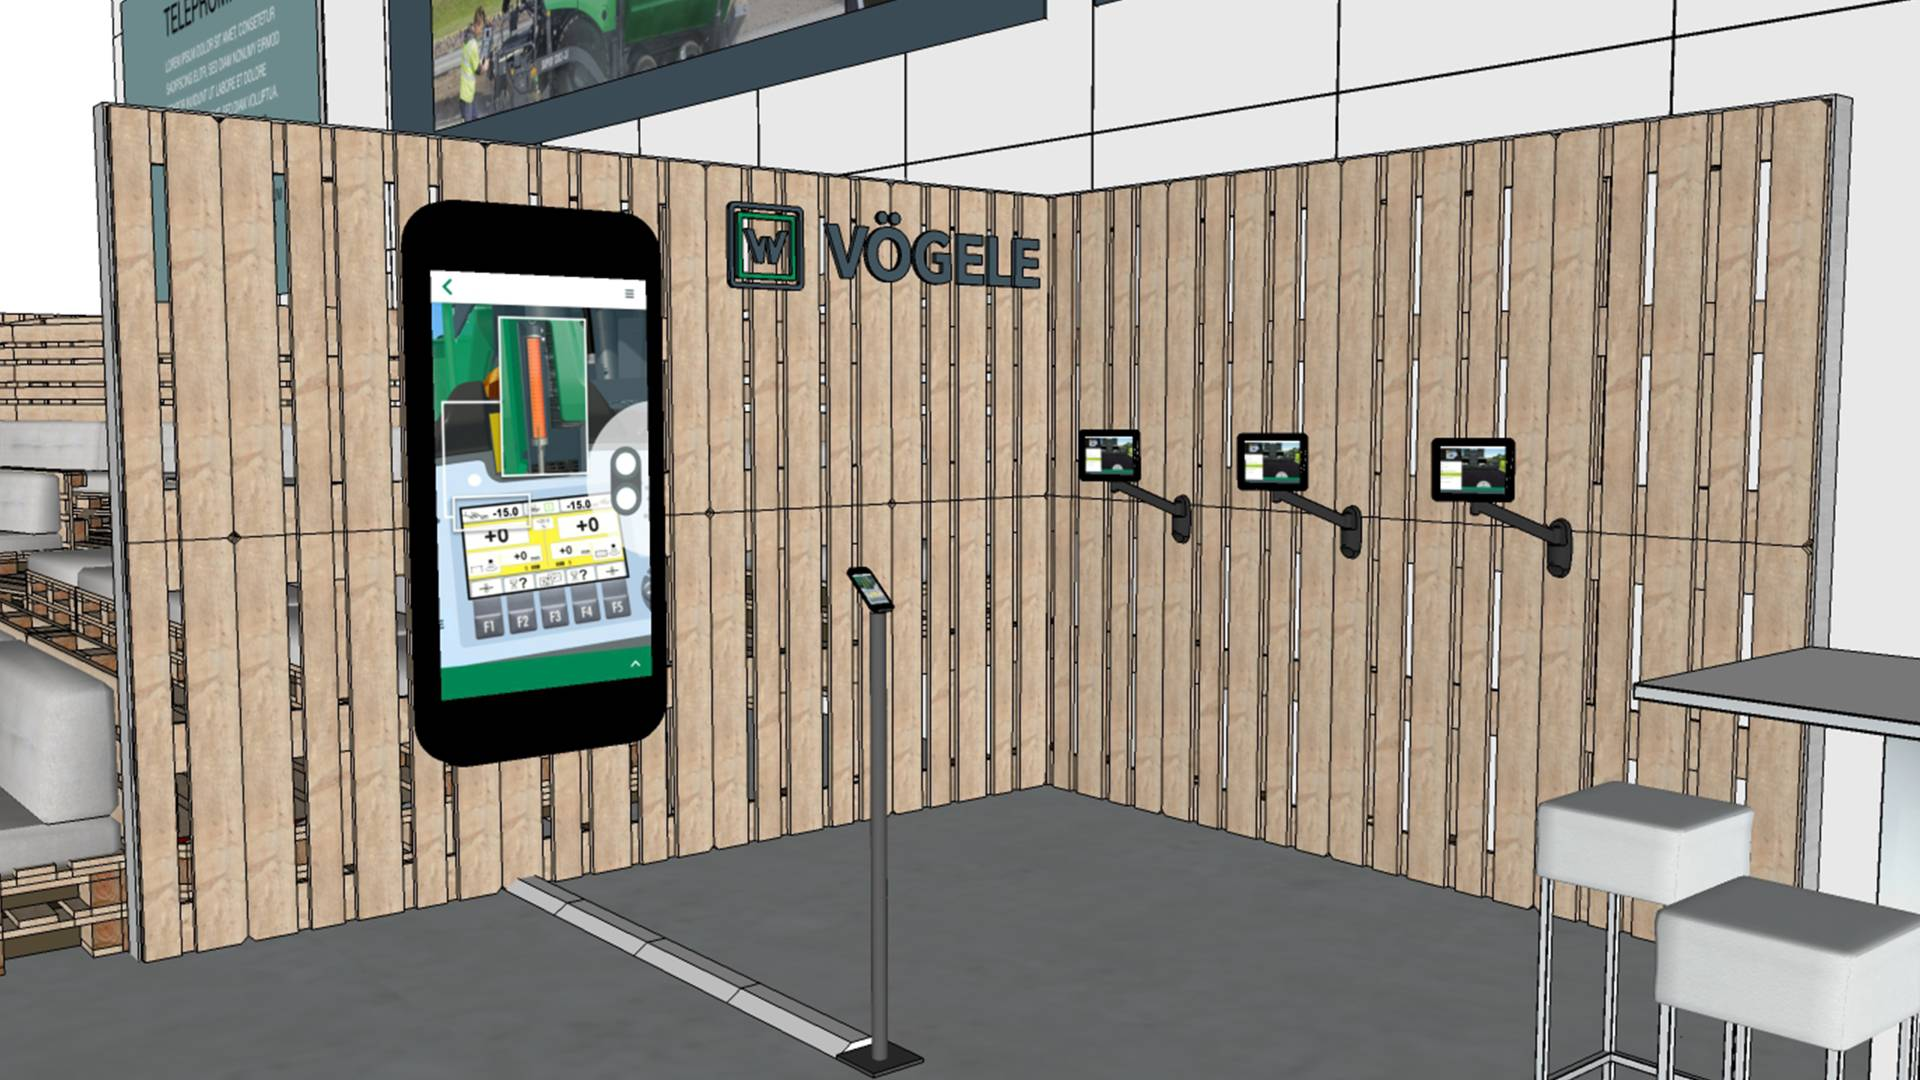 Drawing of a smartphone with the Vögele app